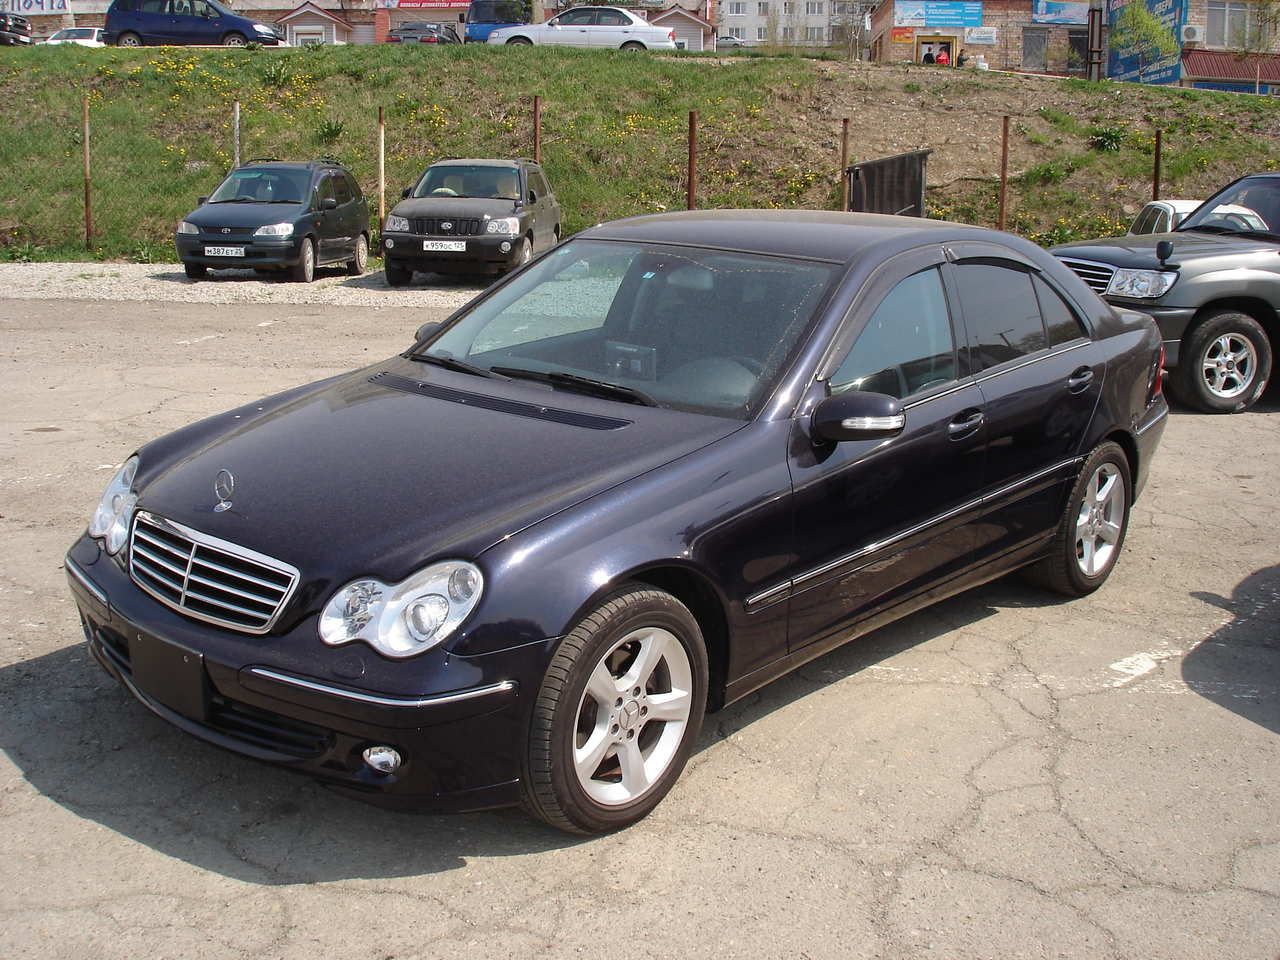 2006 mercedes benz c class photos 2 5 gasoline fr or rr for Mercedes benz c class 2006 price